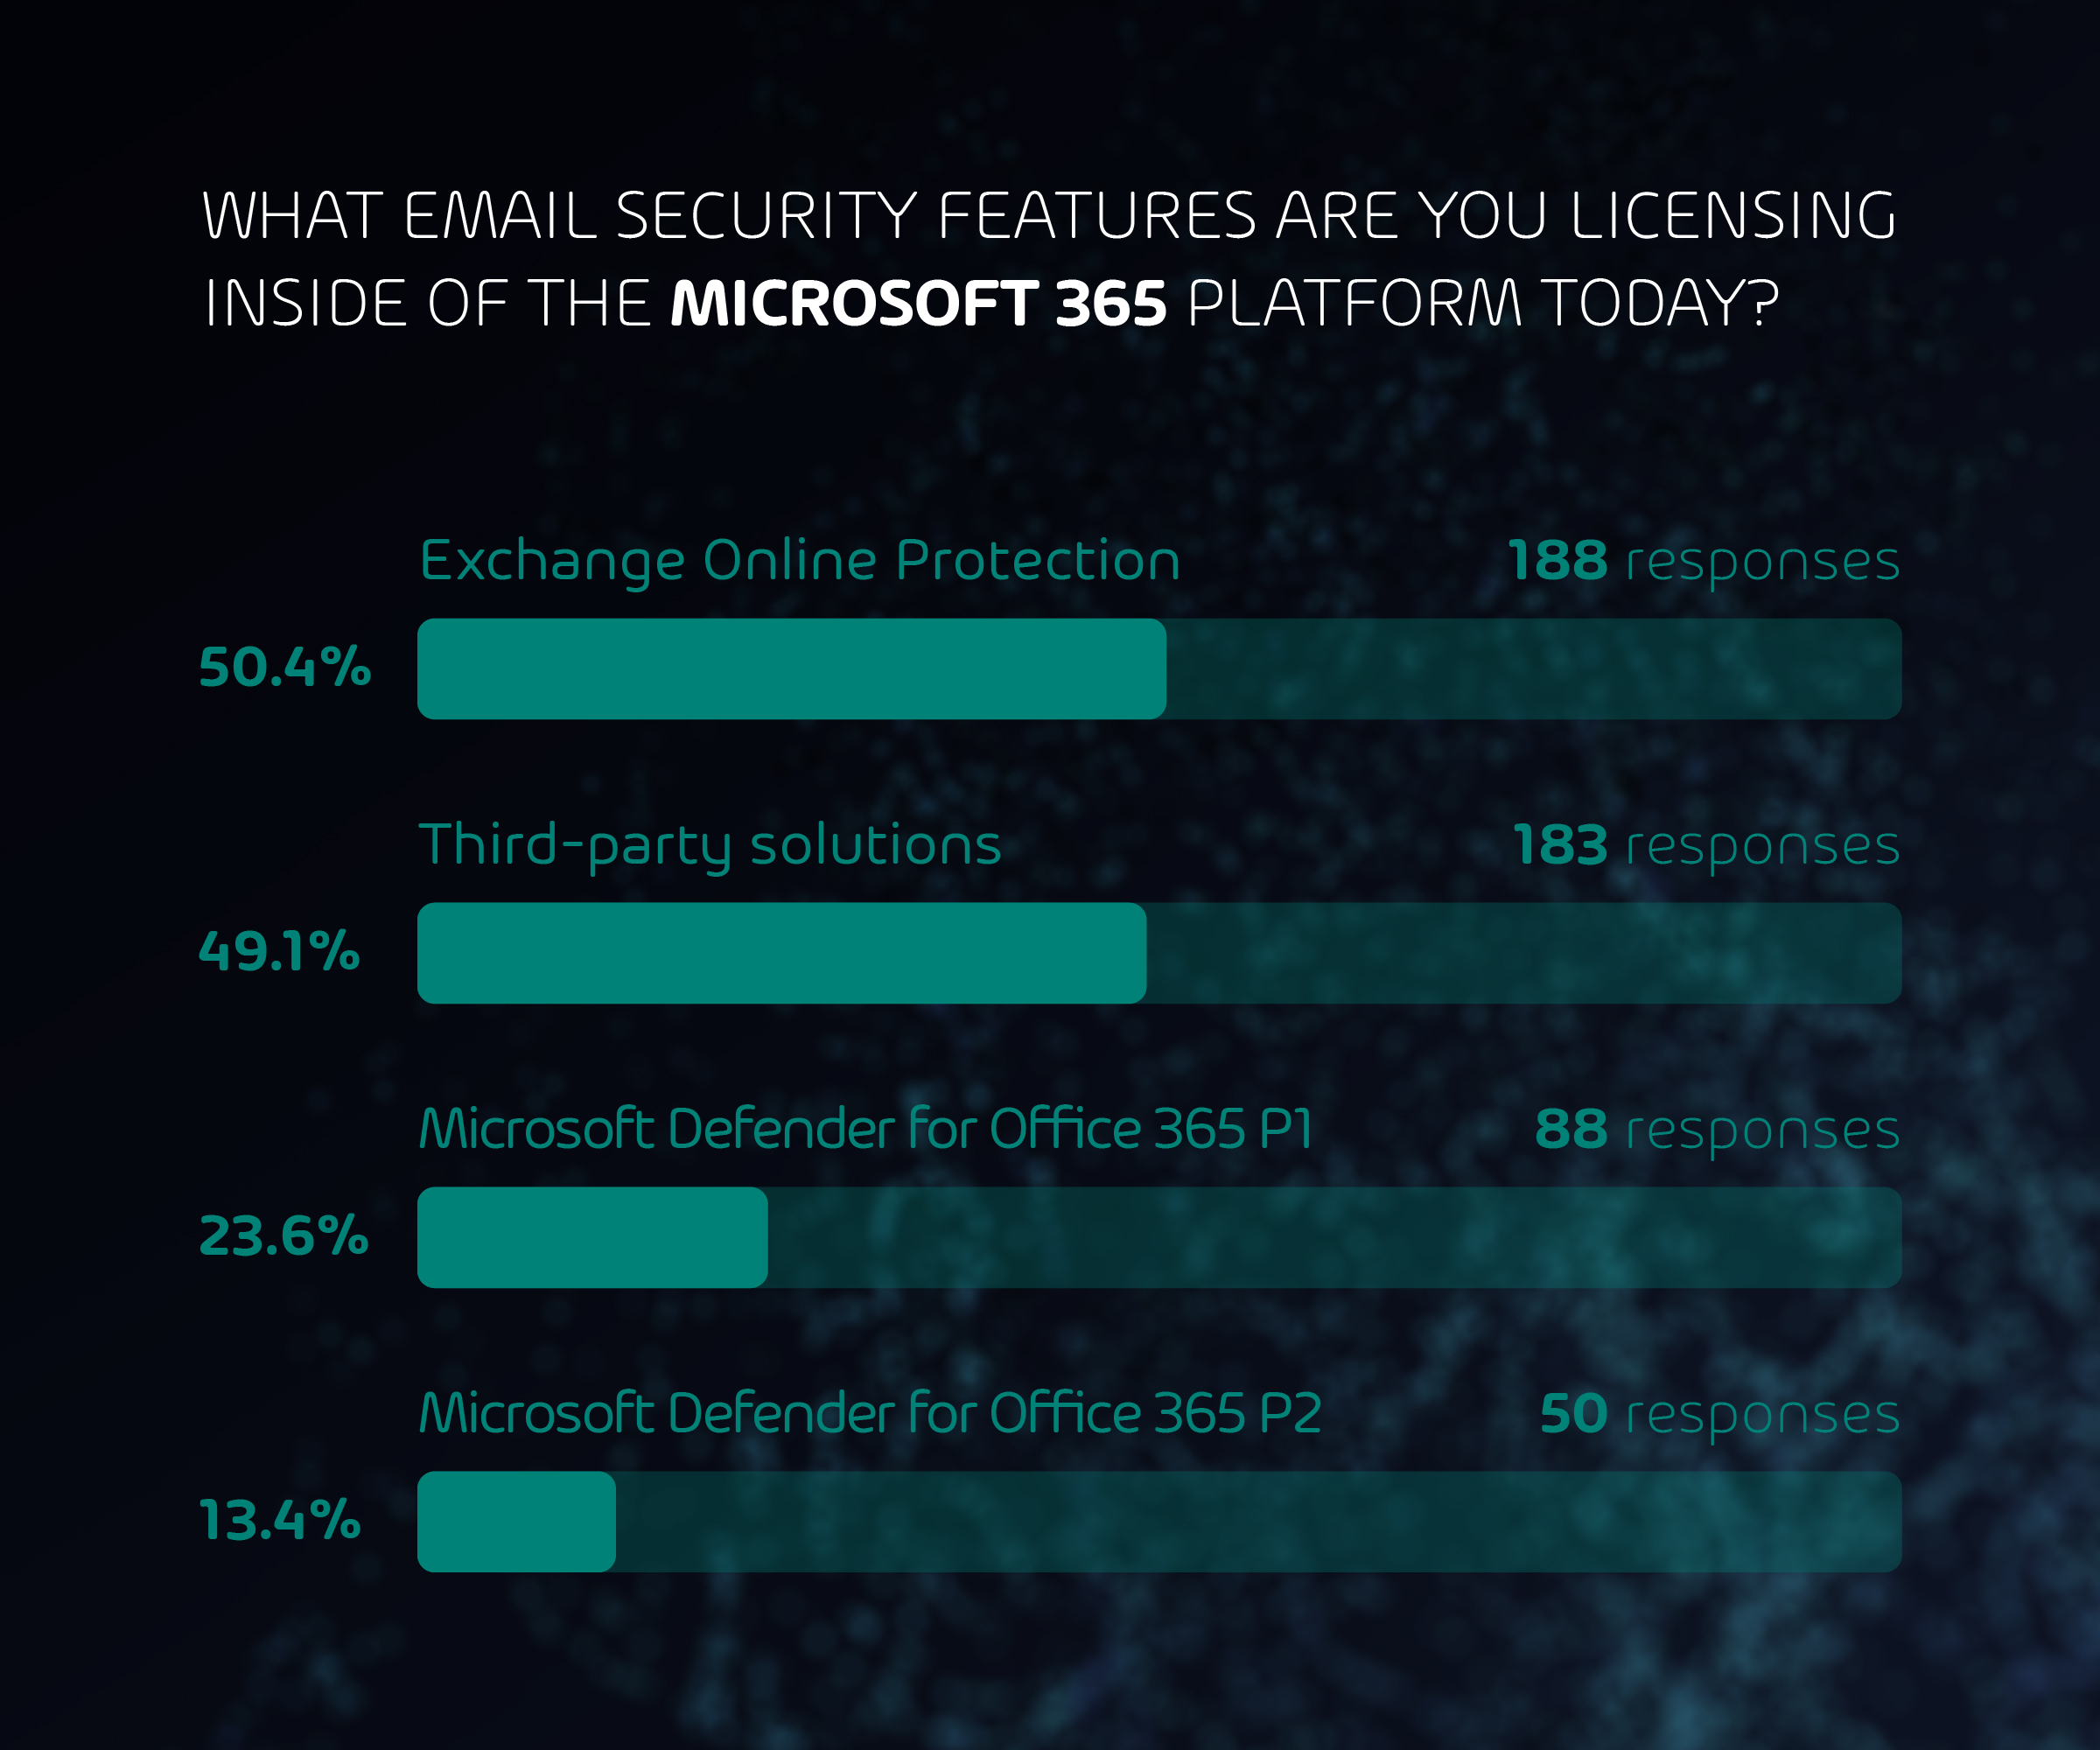 MS Email Security Features Licensing